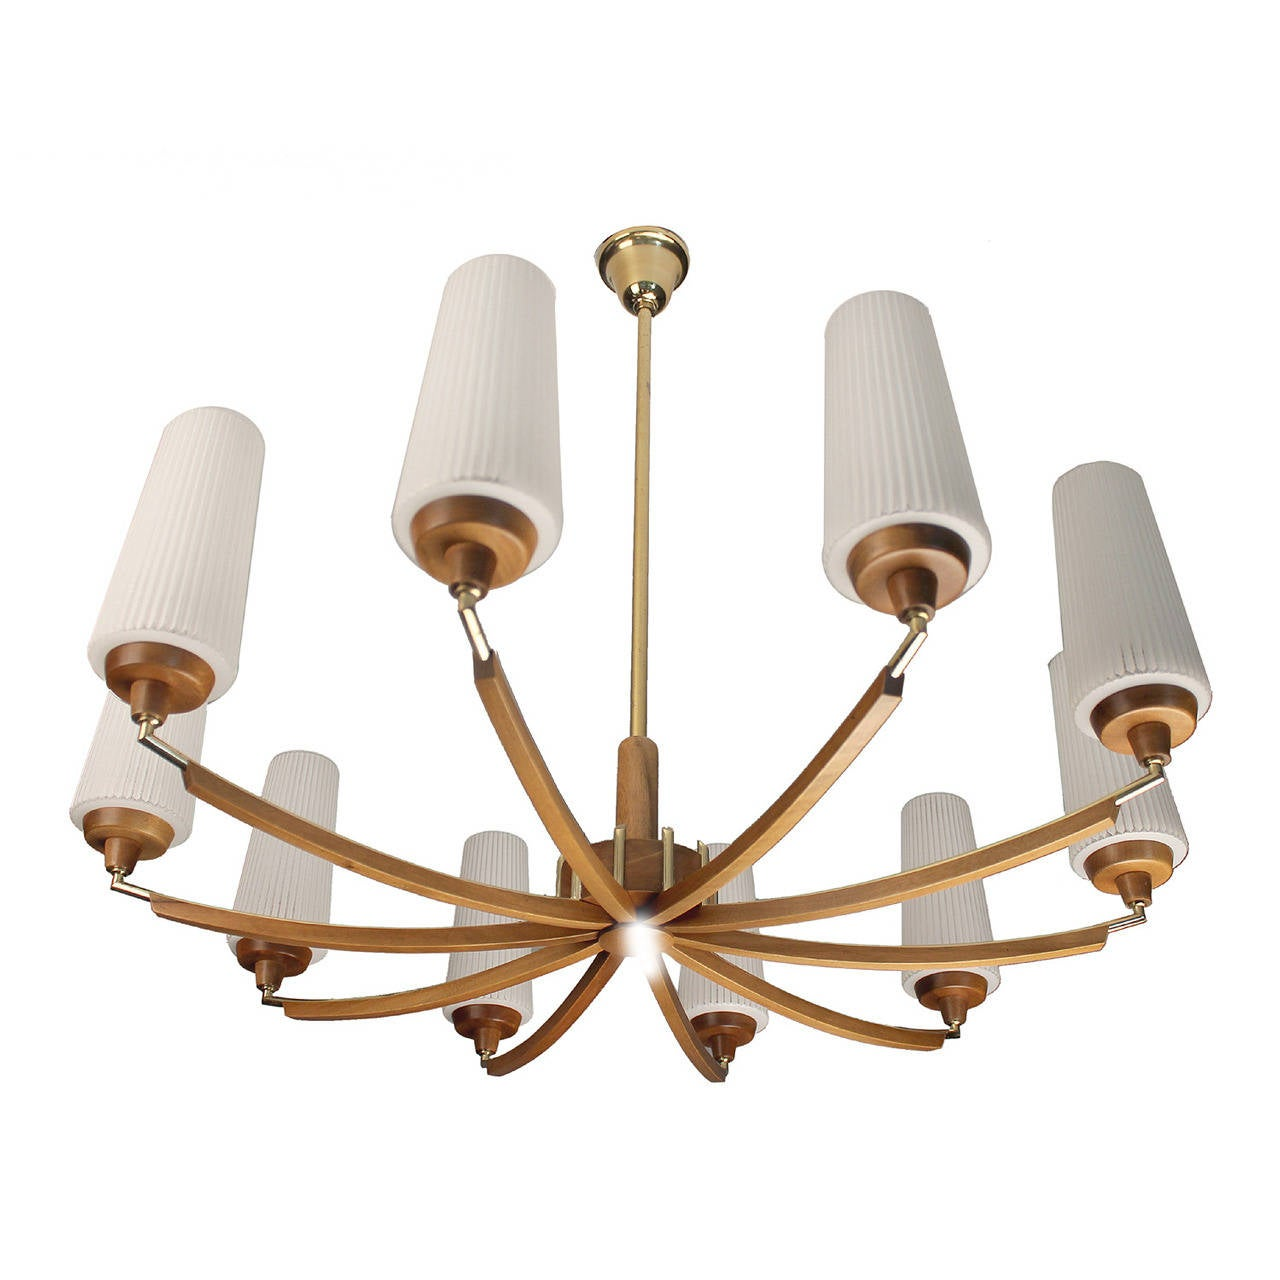 Italian Wood And Brass Chandelier Glass Ceiling Fixture Mid Century Modernist 60s At 1stdibs